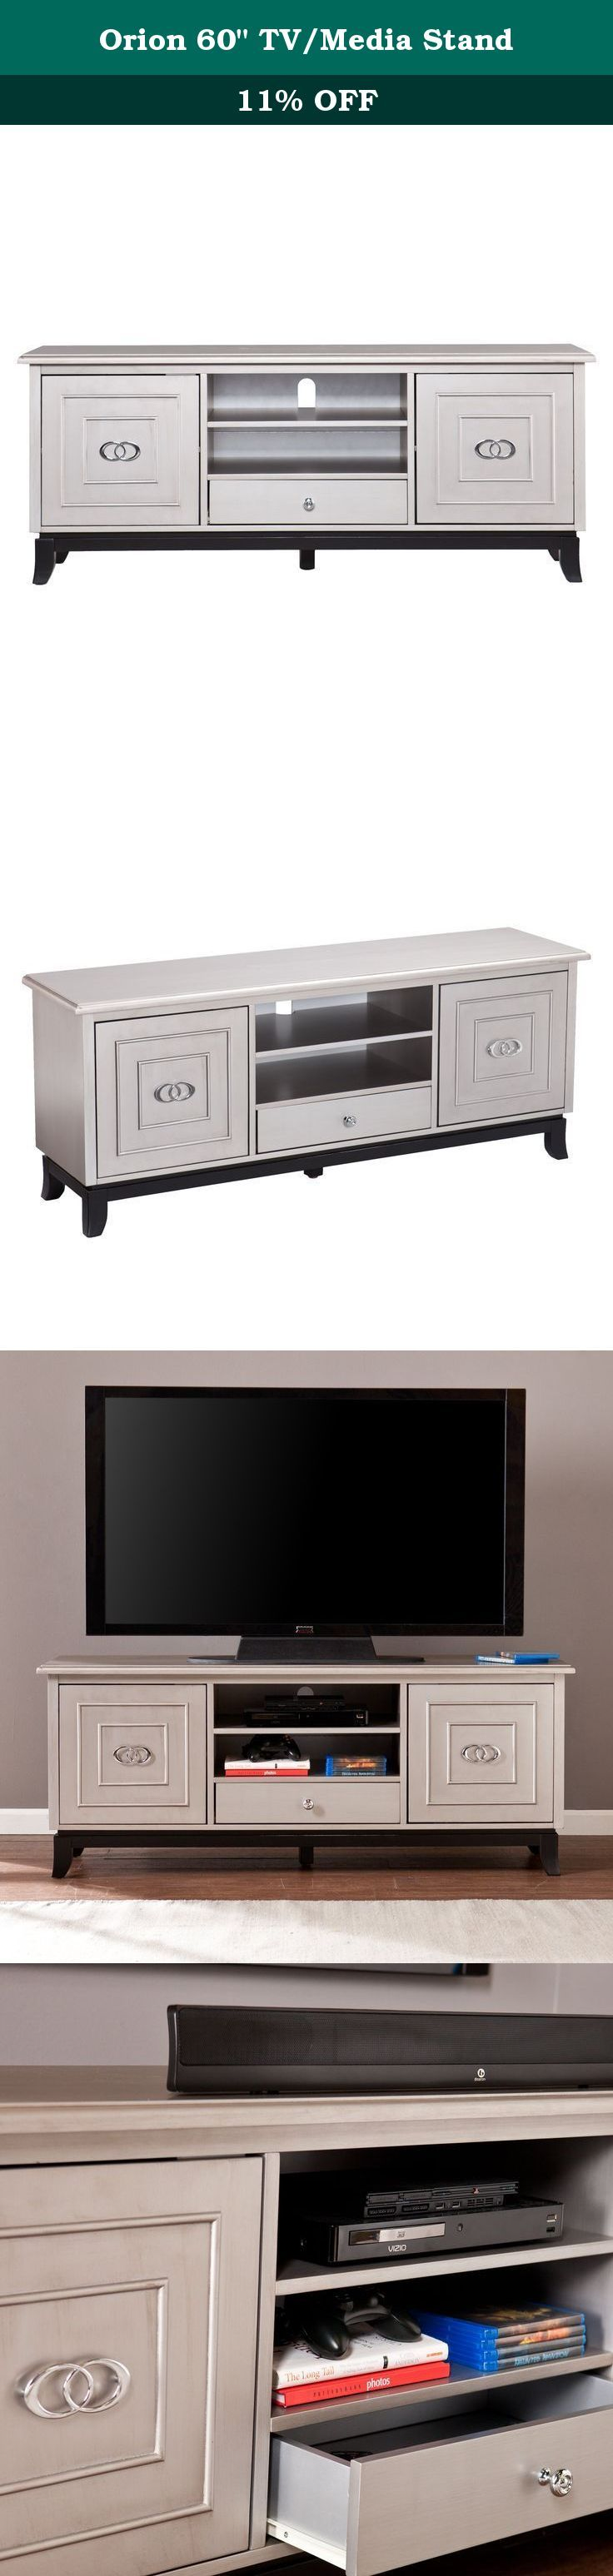 """Orion 60"""" TV/Media Stand. Add the perfect finishing touch to your living room with this sophisticated media stand. A wide, low profile and flared legs bring subtle Asian influence to the clean design. The antique gray body, black base, and chrome hardware complement contemporary décor. Open media shelves are ideal for consoles, while ample closed storage organizes plenty of movies, games, and accessories to entertain your every whim. This item accommodates a flat panel TV up to 58"""" W..."""